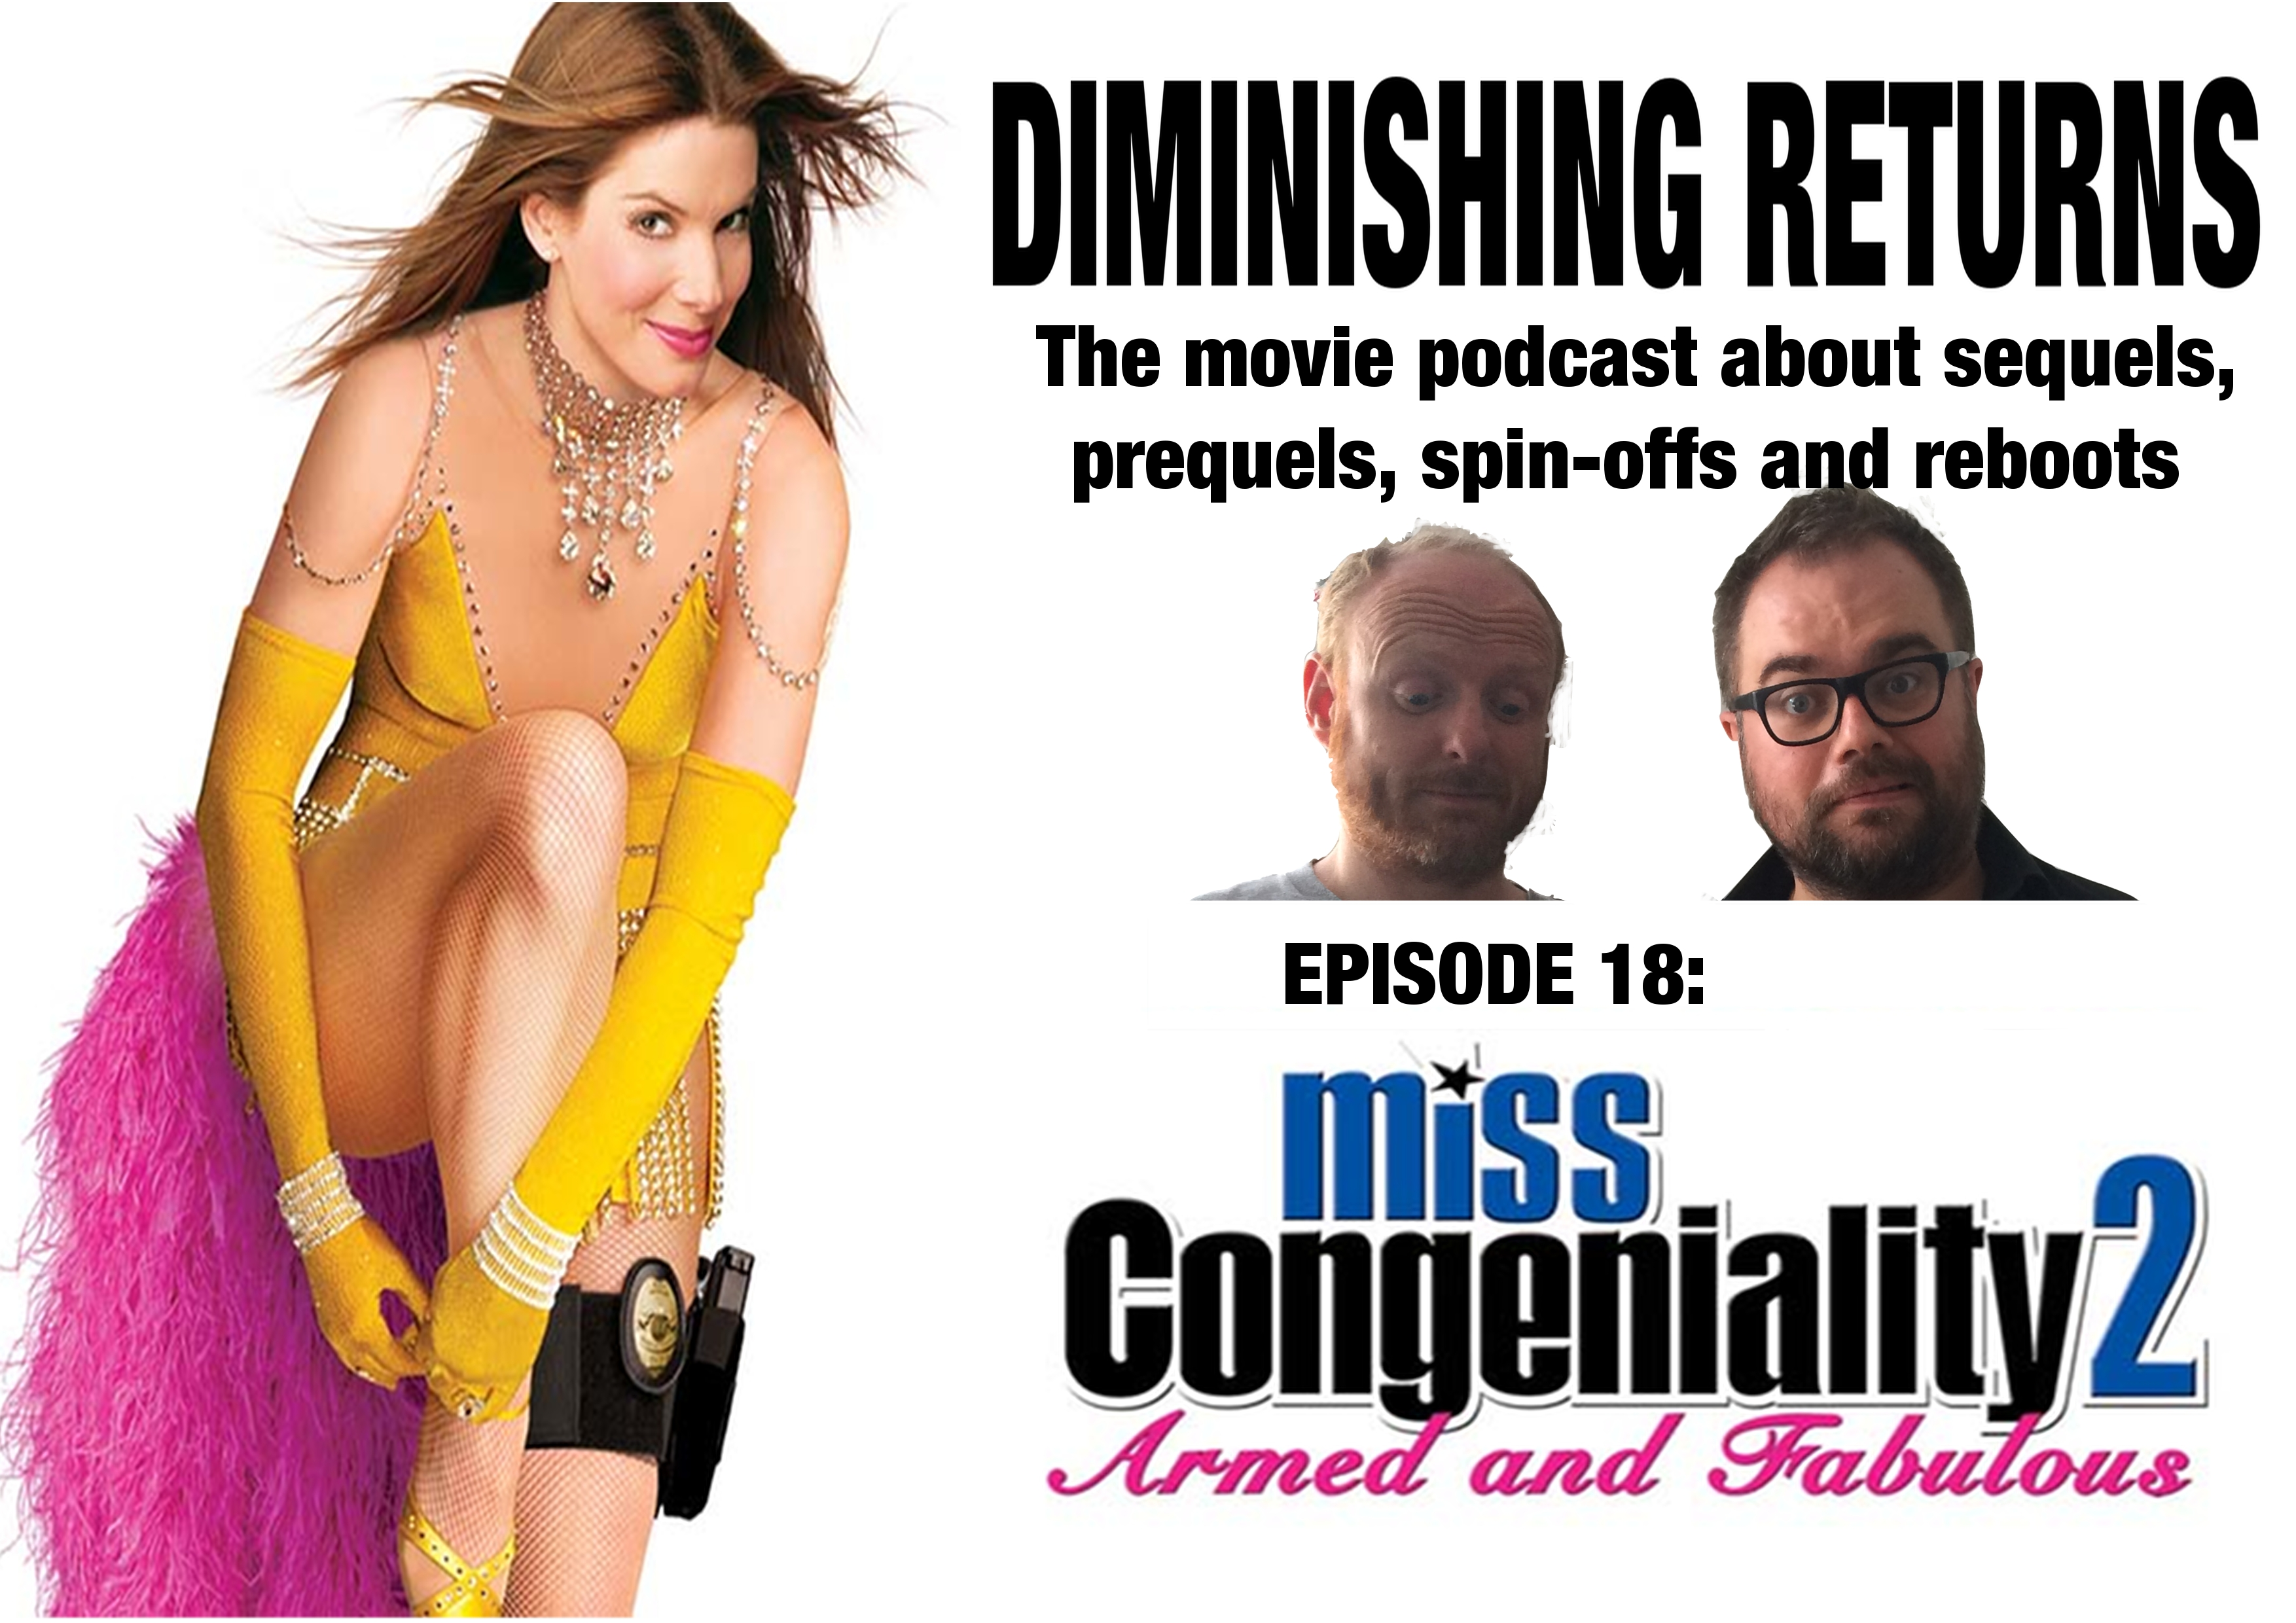 Episode 18: Miss Congeniality 2: Armed and Fabulous. Diminishing Returns Podcast.